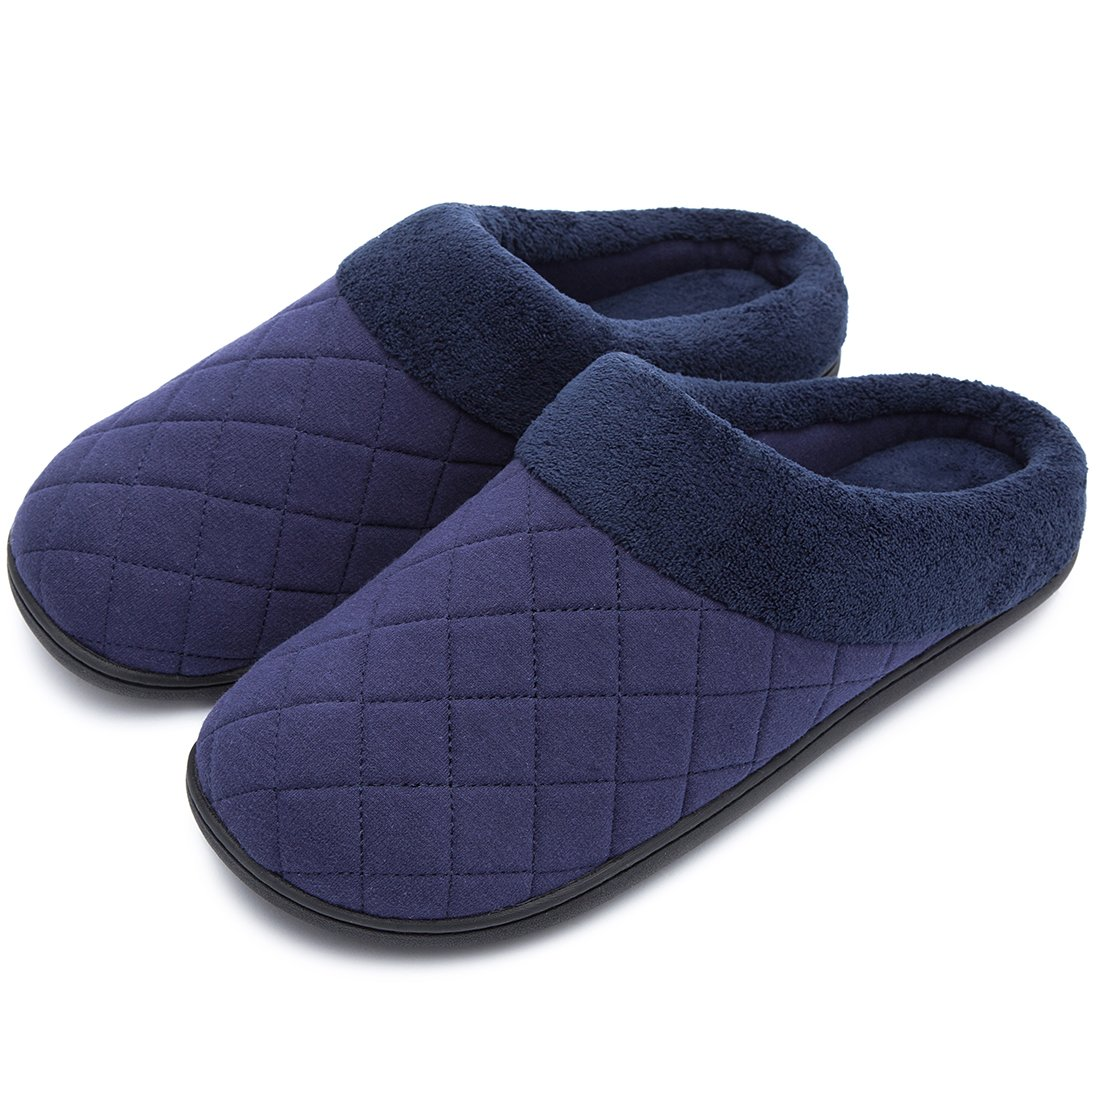 Men's Comfort Quilted Memory Foam Fleece Lining House Slippers Slip On Clog House Shoes (Small / 7-8 D(M) US, Navy Blue)